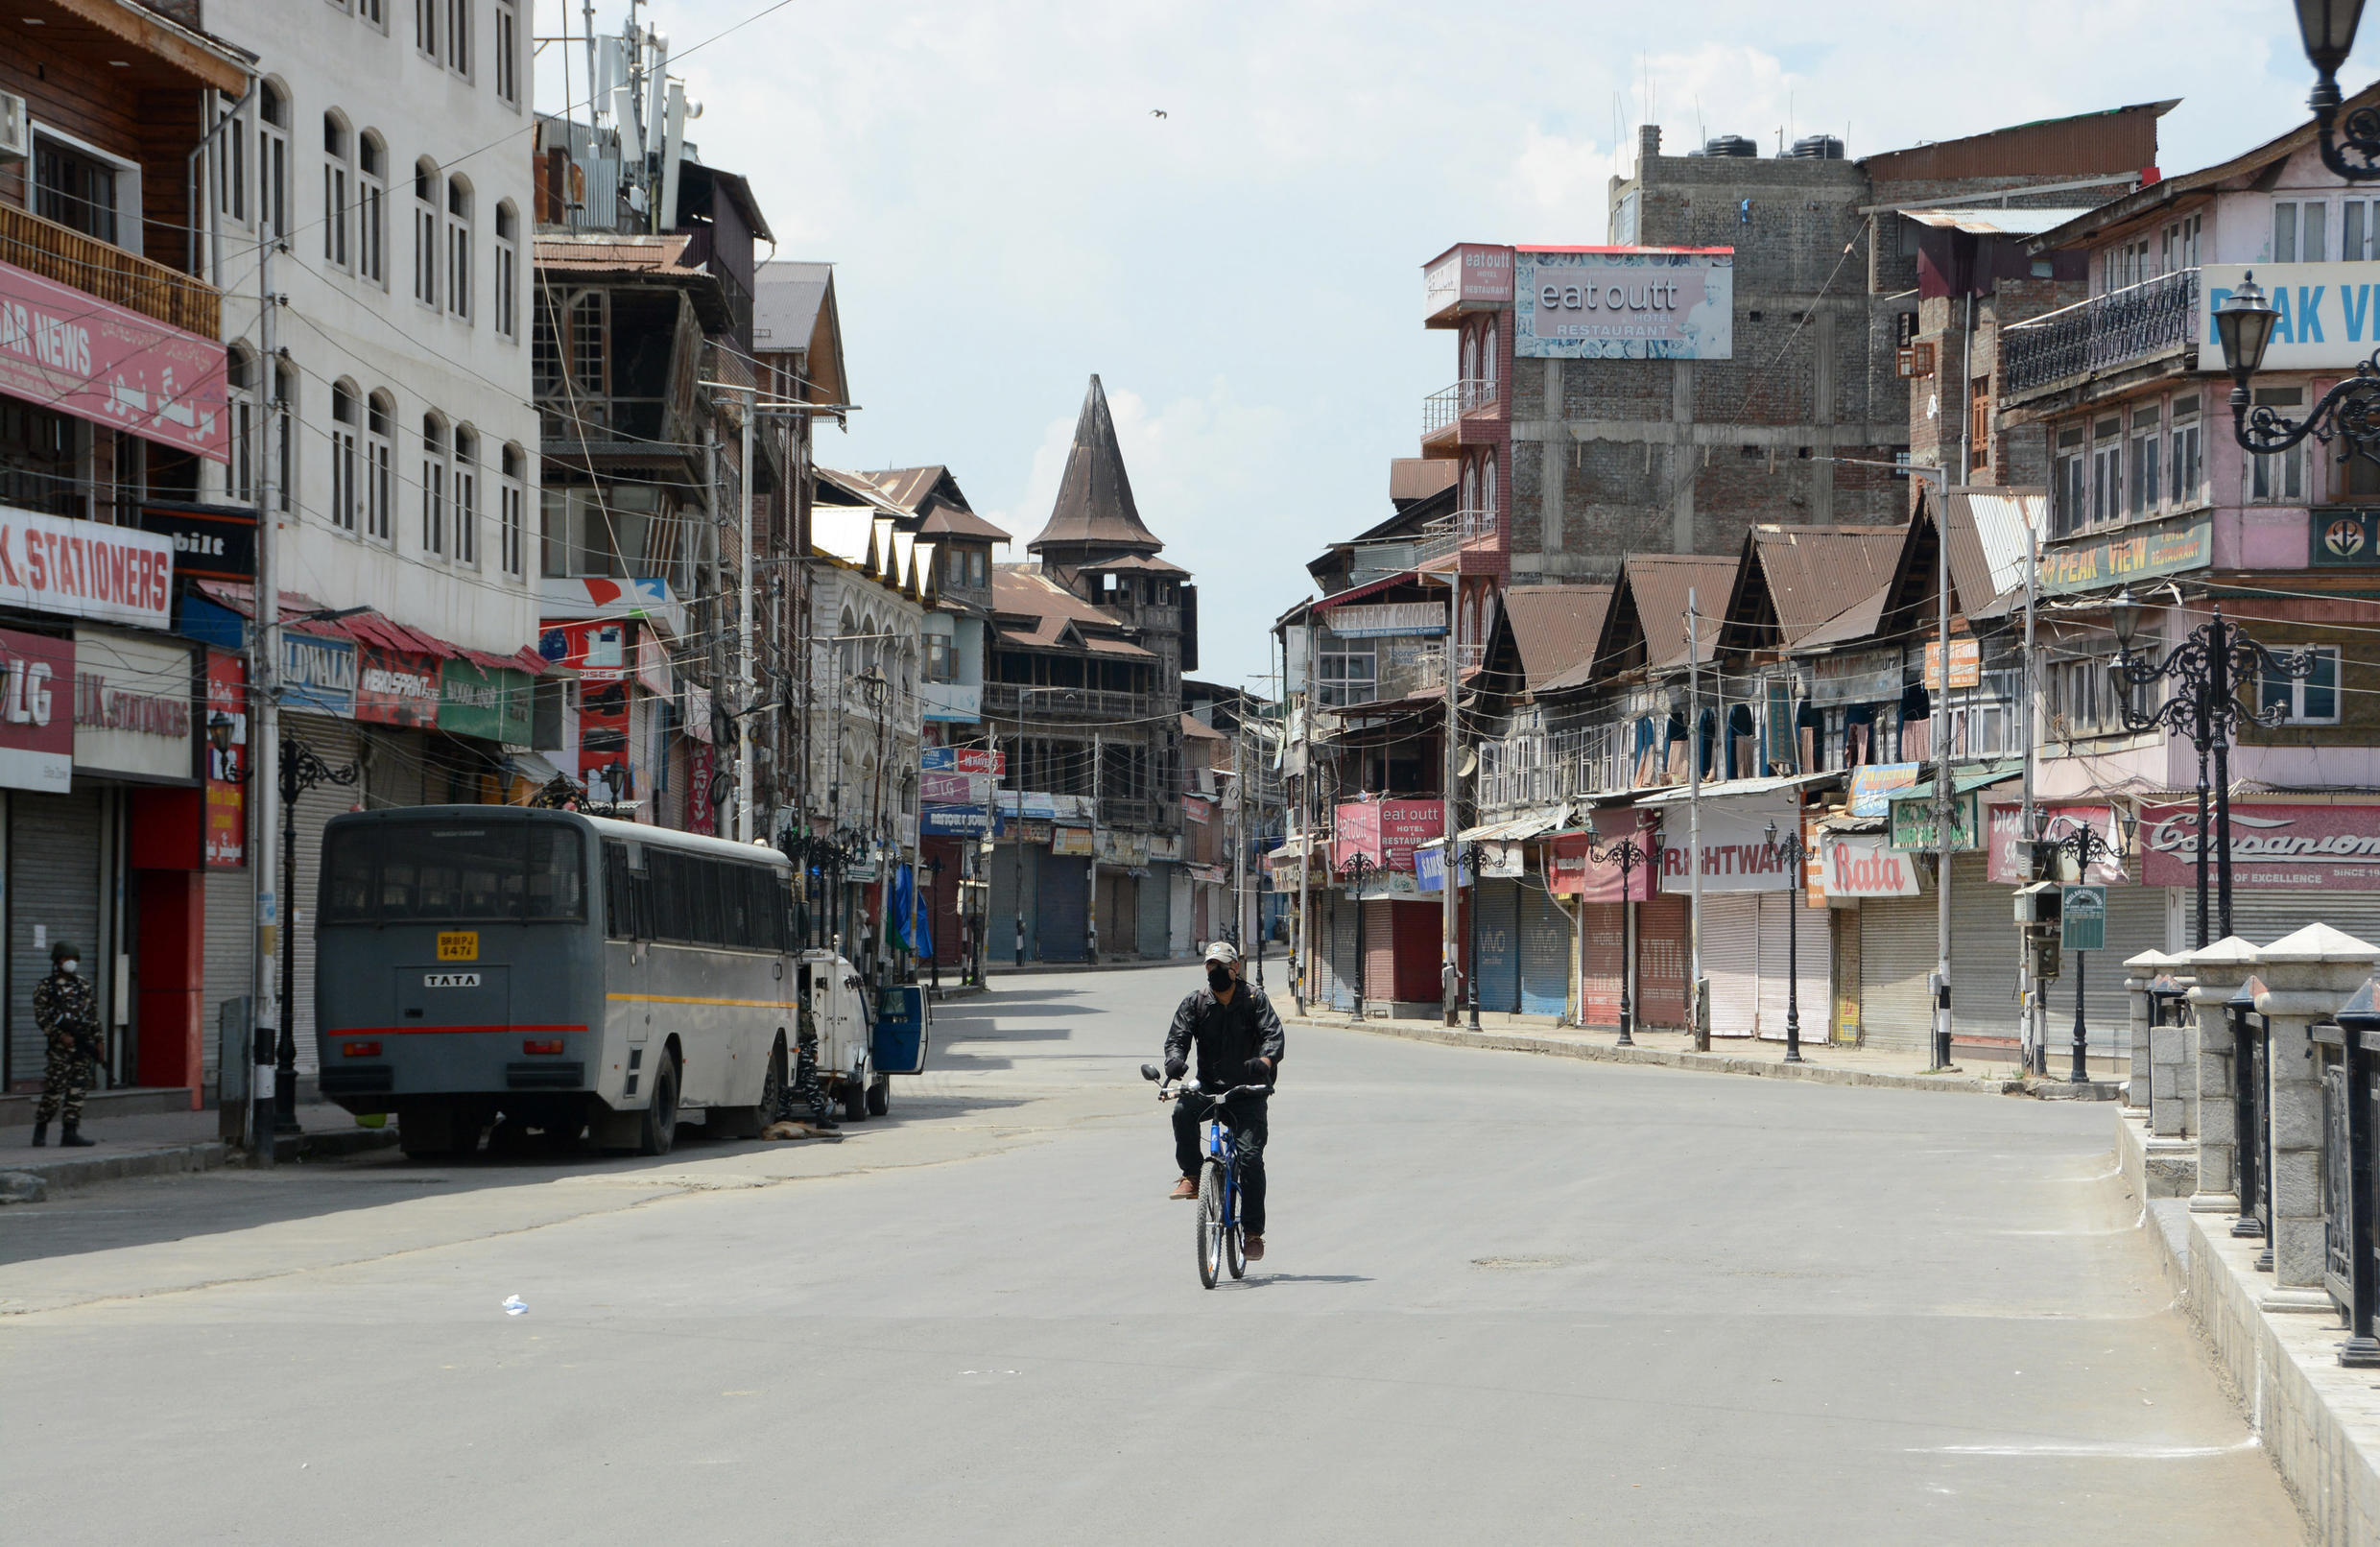 A tight curfew has been imposed by authorities on the first anniversary of the revocation of Kashmir's autonomy.